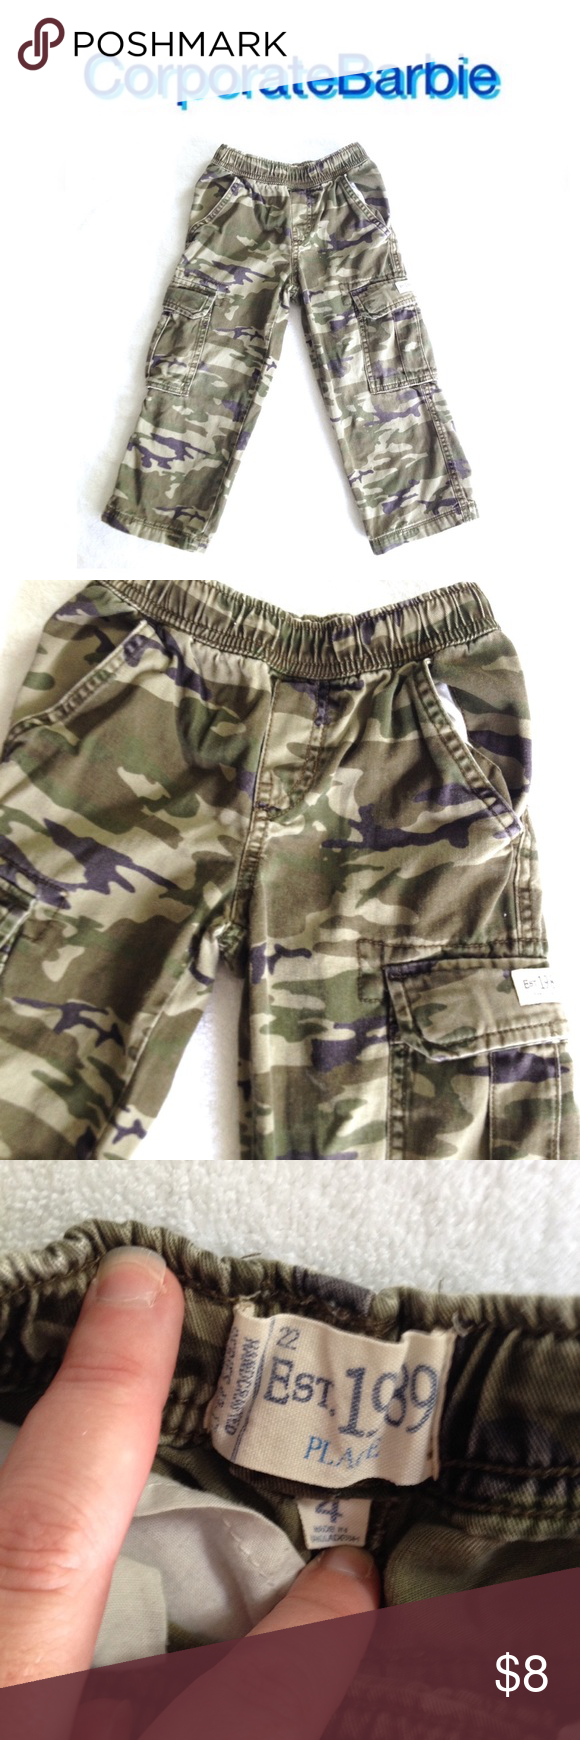 4T Camouflage Cargo Pants Pull on style camouflage cargo pants from the Children's Place. Size 4T. In good preloved condition, just some all over fading. Originally $20. Children's Place Bottoms Casual